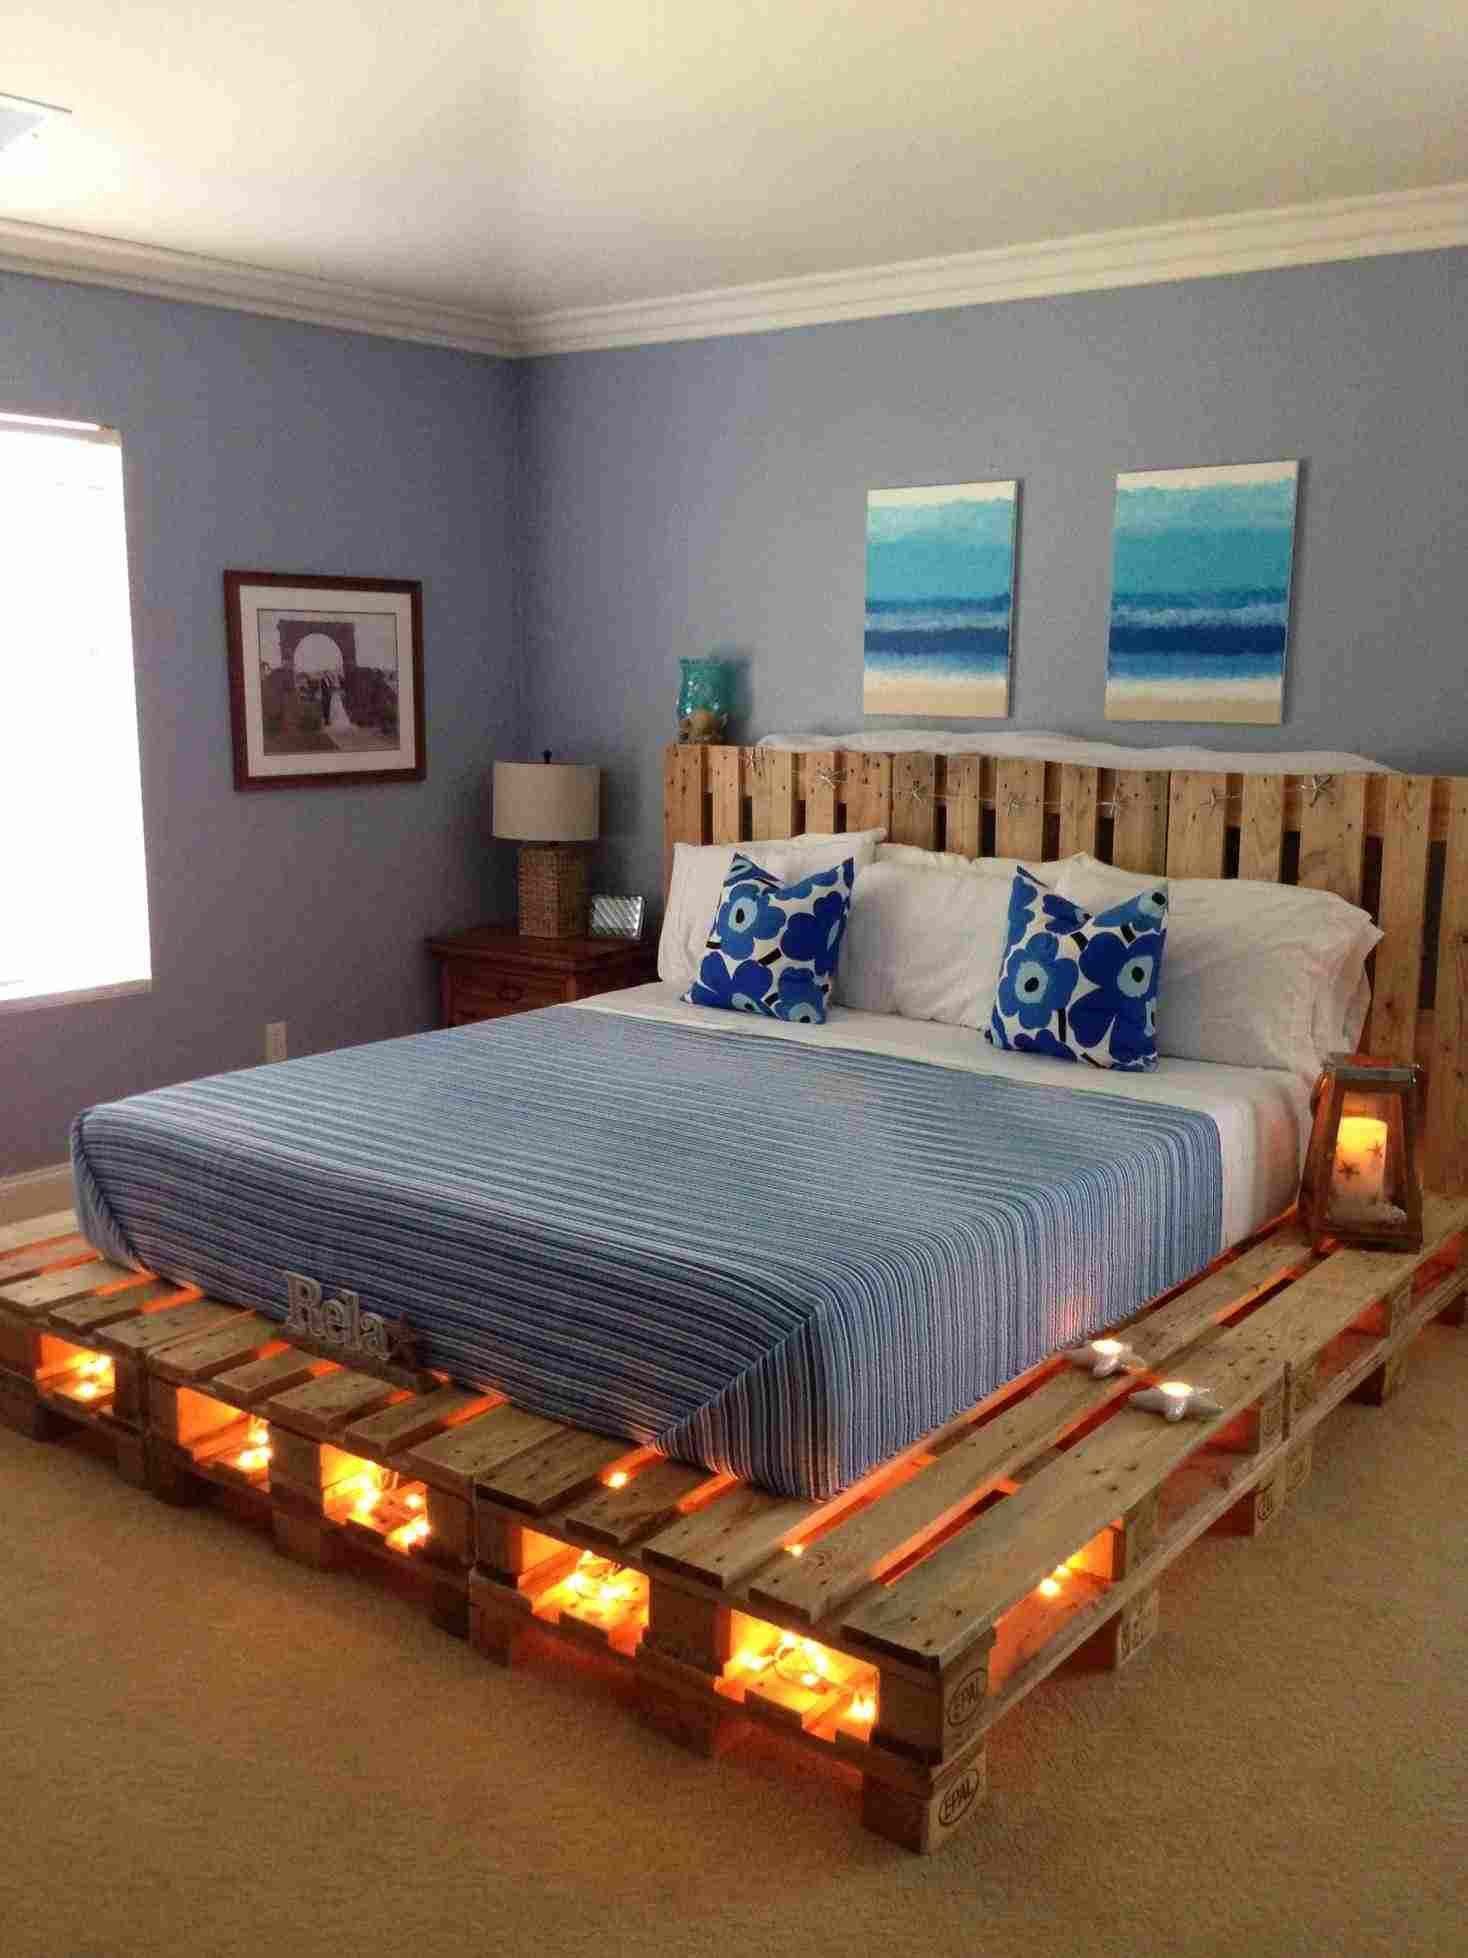 11 Lovely Wooden Crate Bed Frame which Popular This Year - Raising